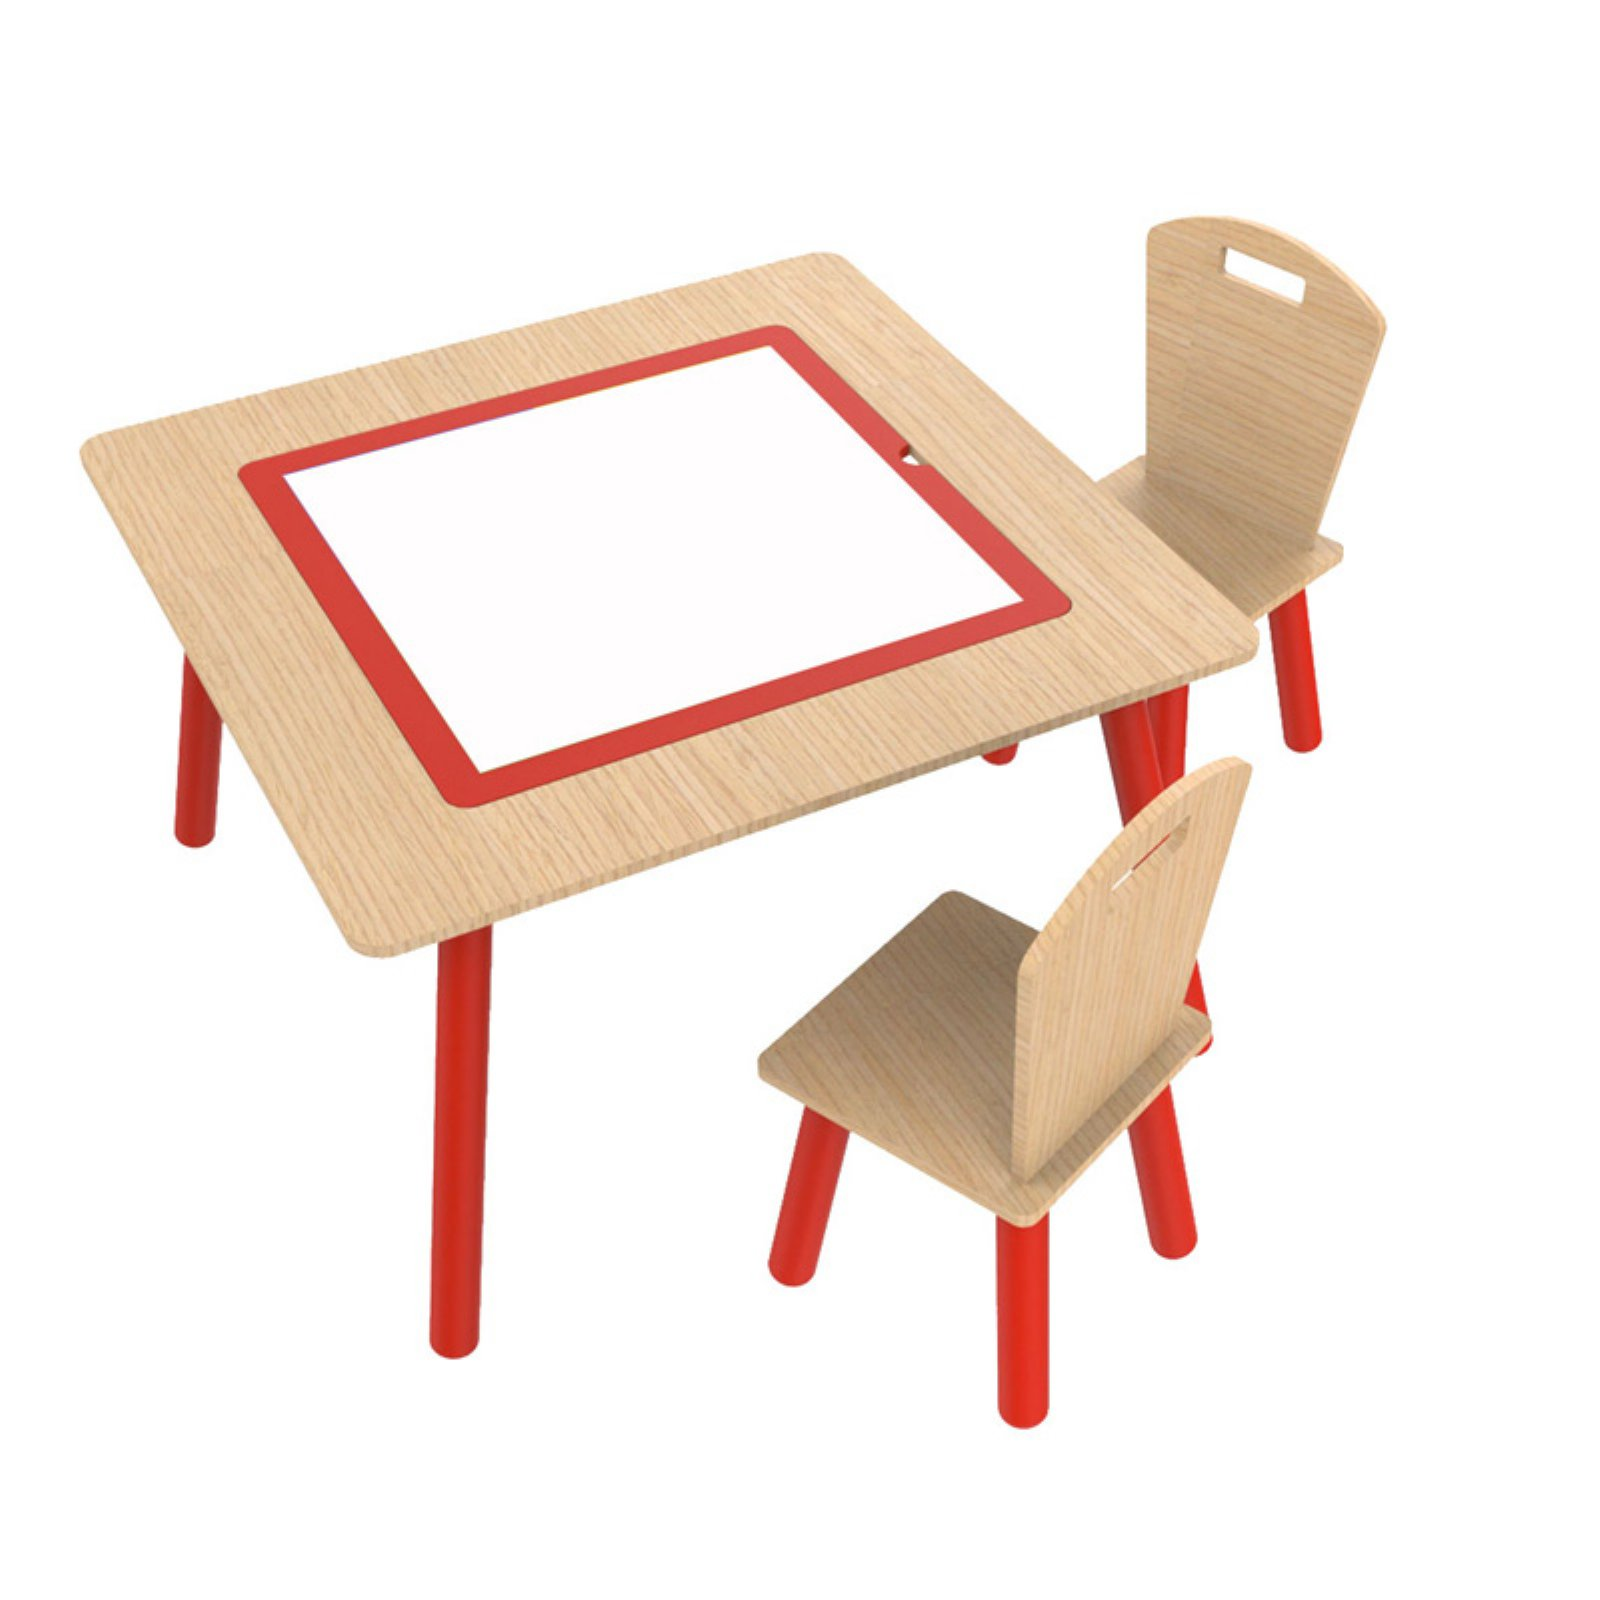 O'Kids 4-in-1 Flip Top Multi-Function Table and Chairs Set, Multiple Colors